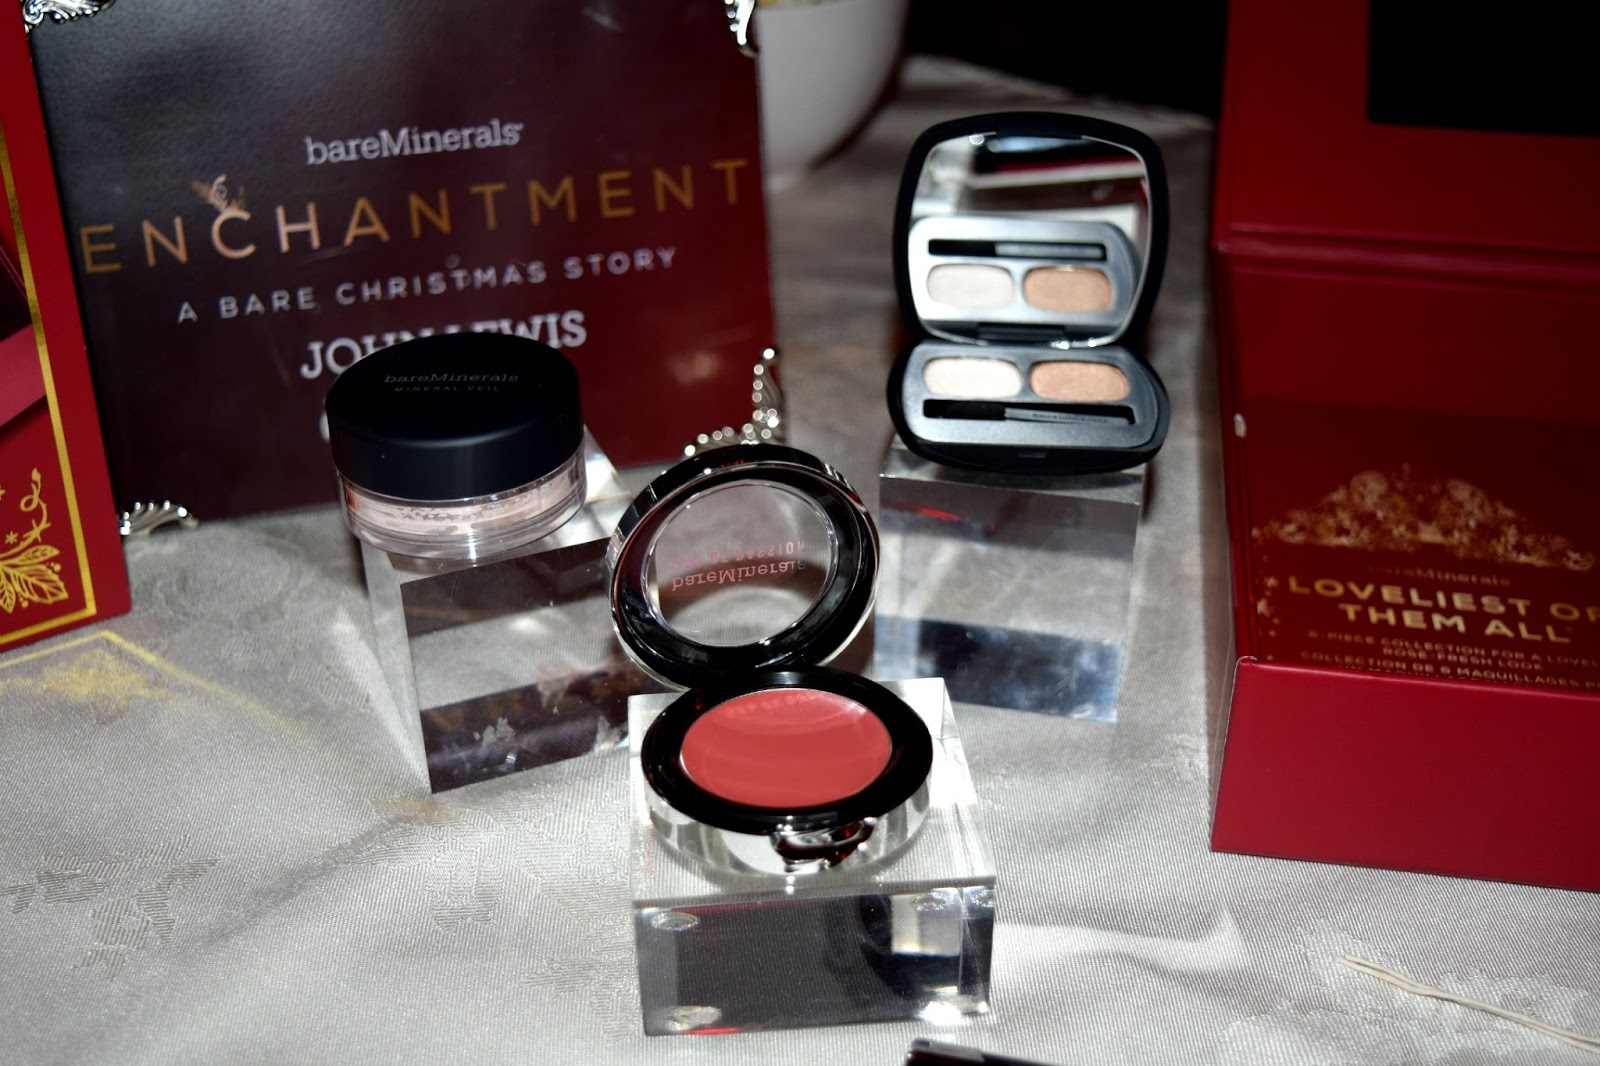 BareMinerals Christmas Range Enchanted